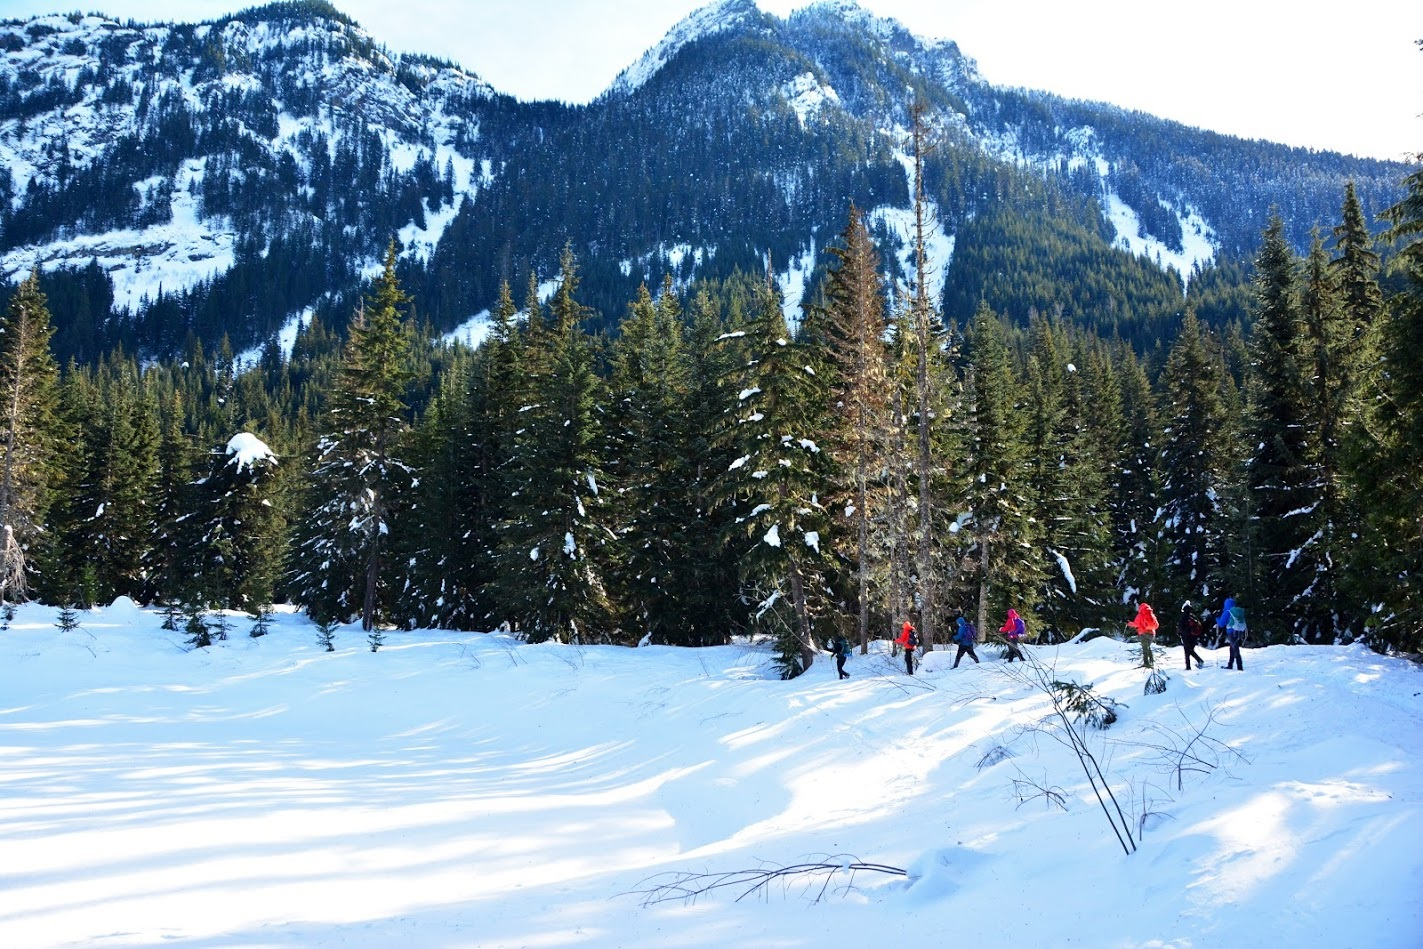 Snowshoeing Gold Creek Pond at Snoqualmie Pass